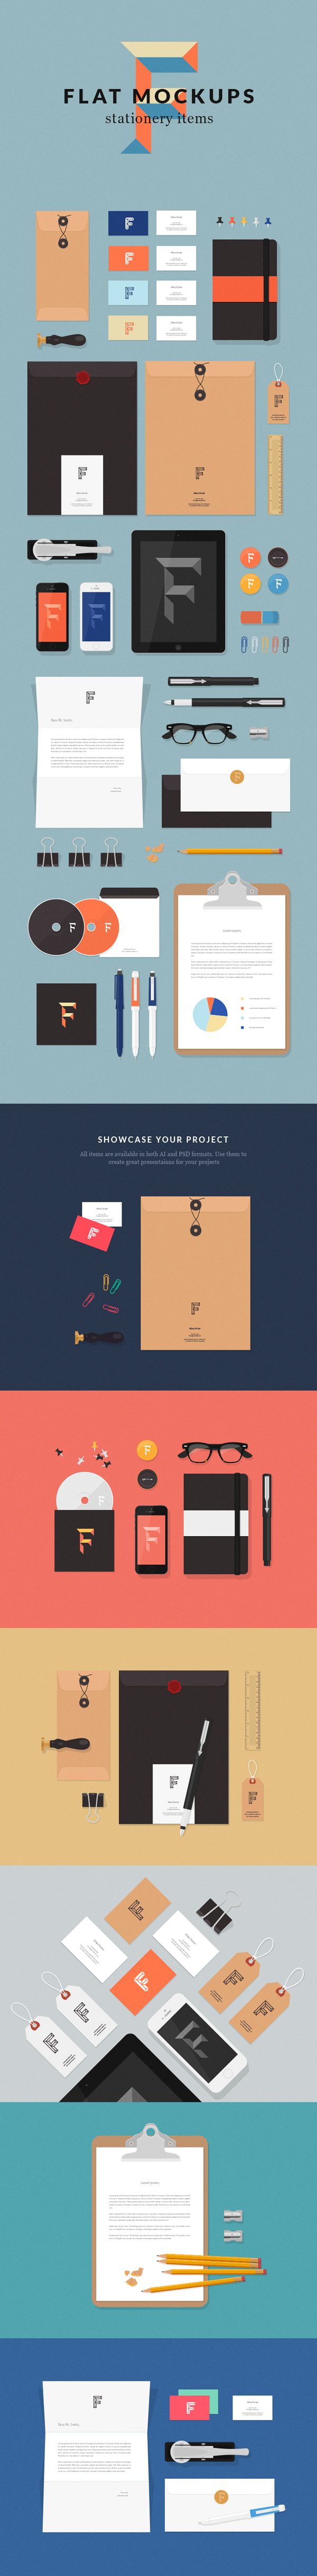 Flat-MockUps-Stationery-Items-600